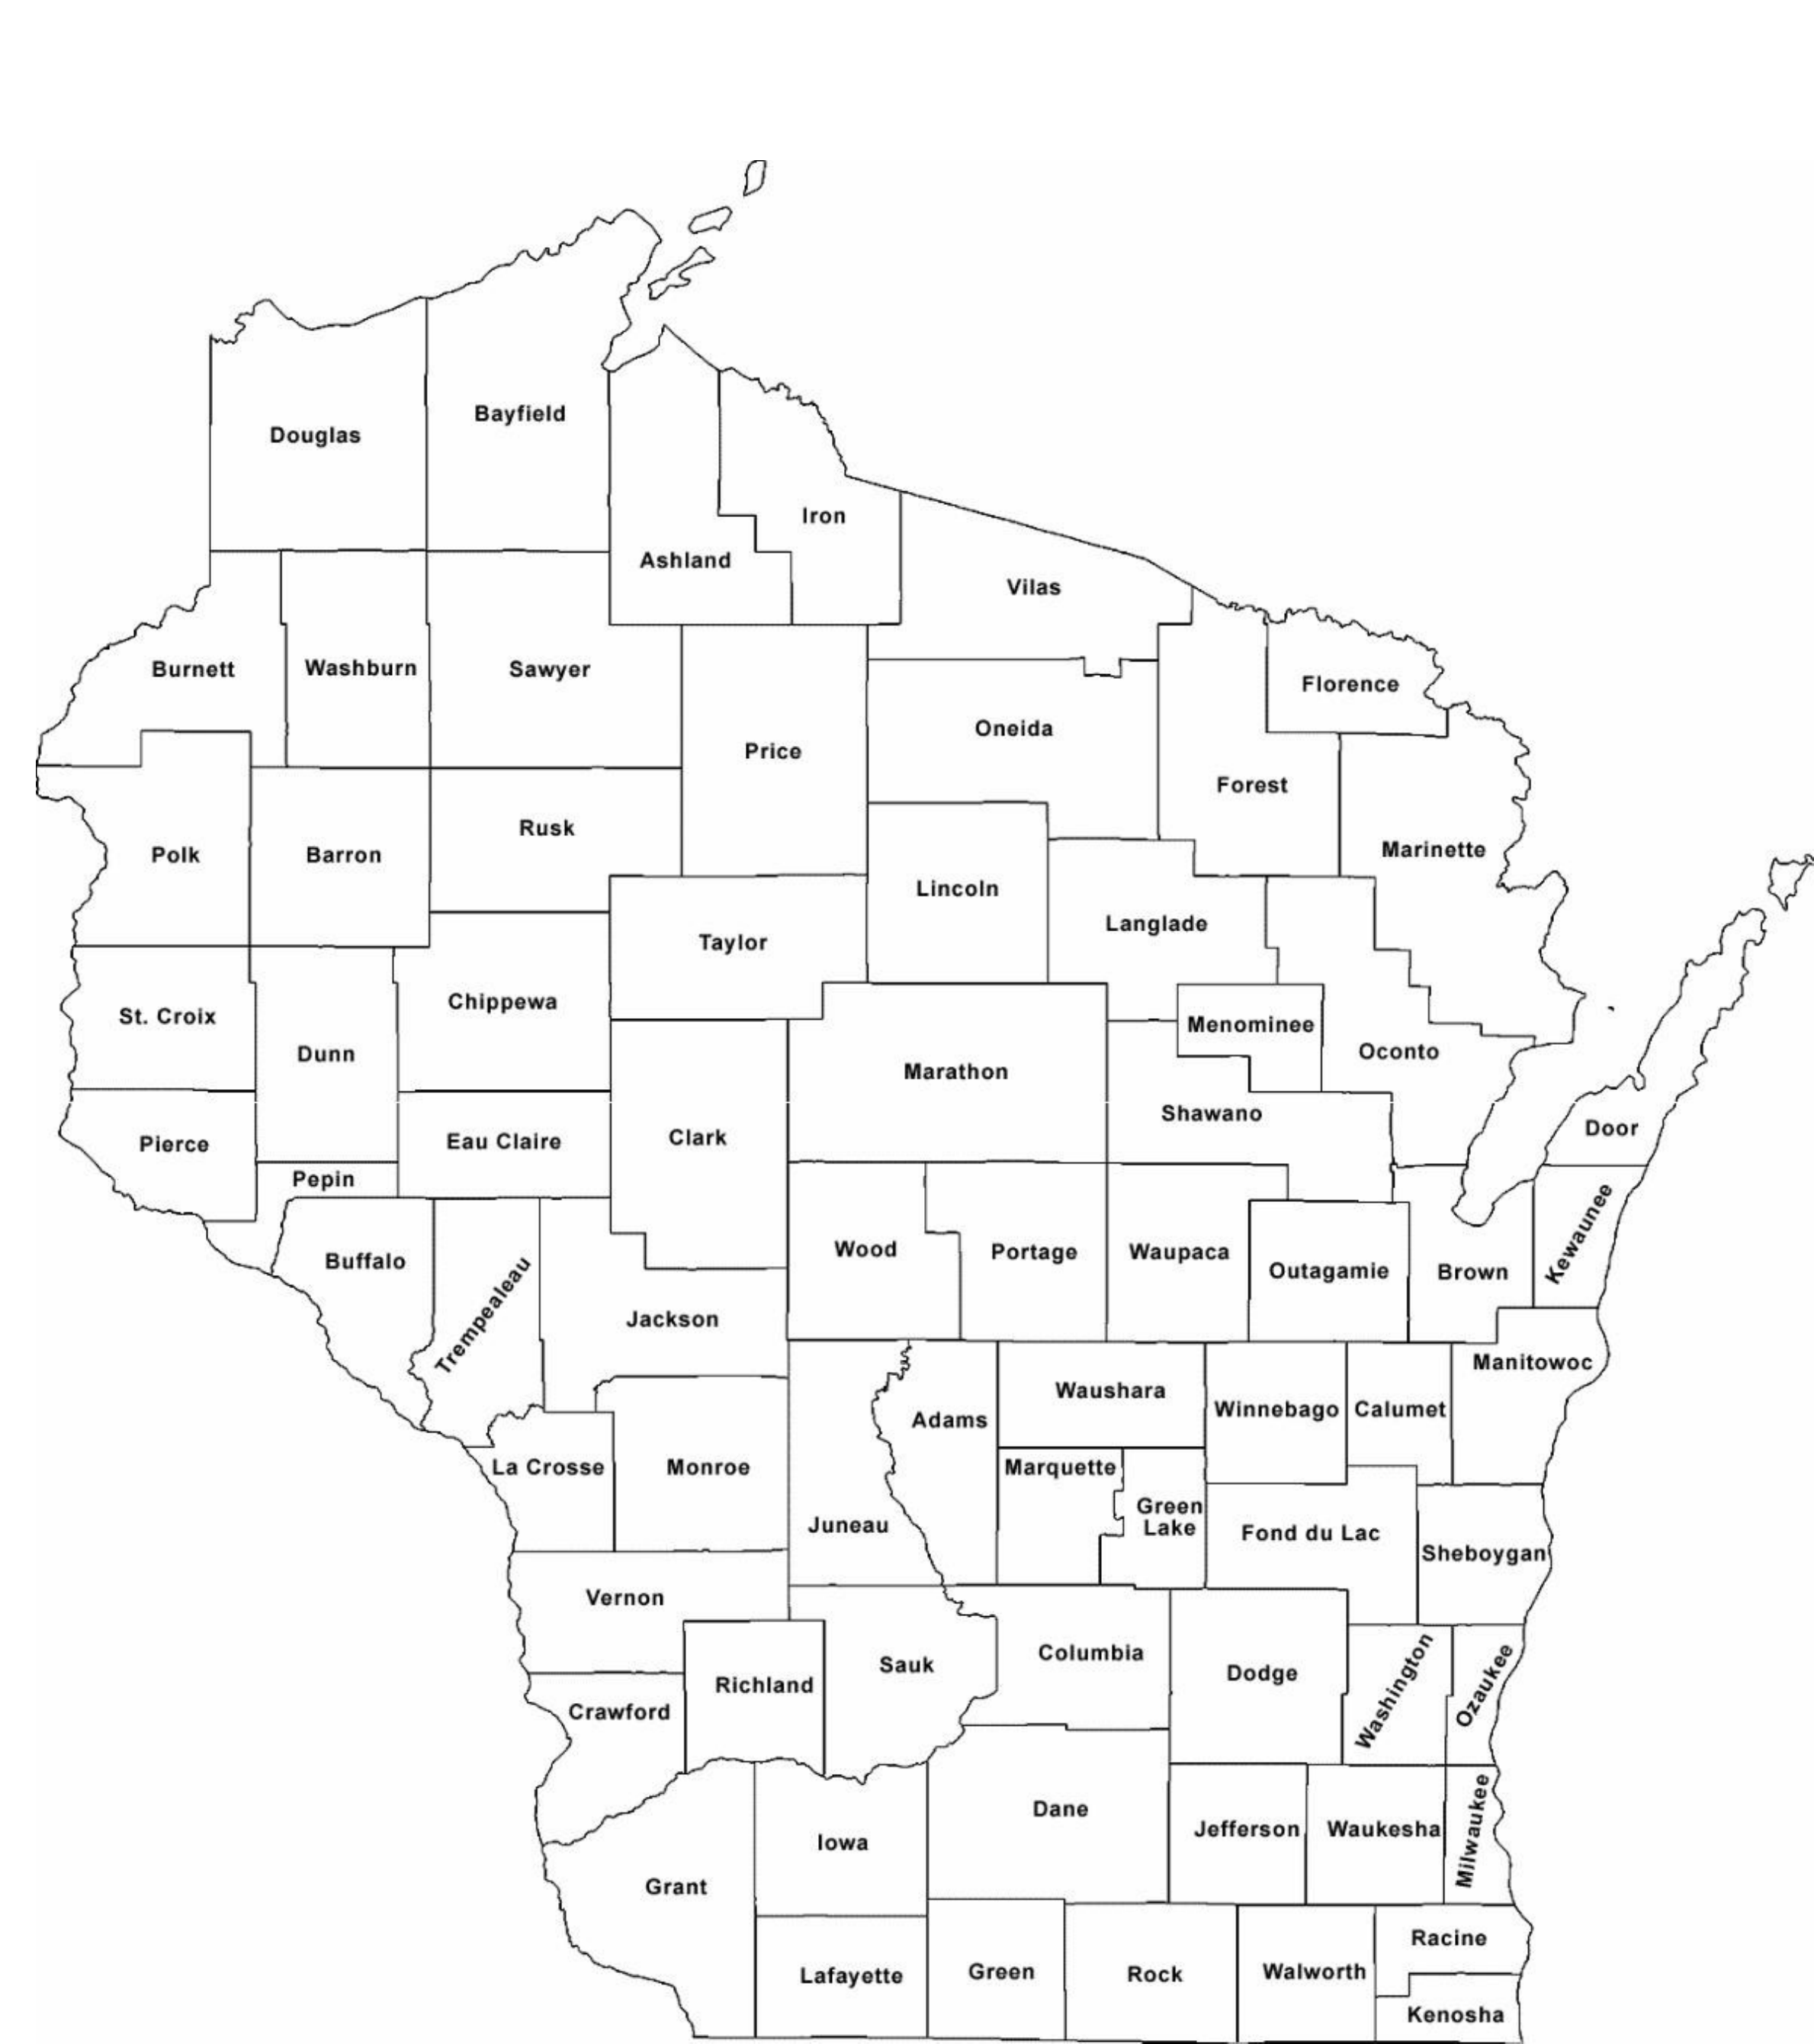 Wisconsin County Map With County Names Free Download